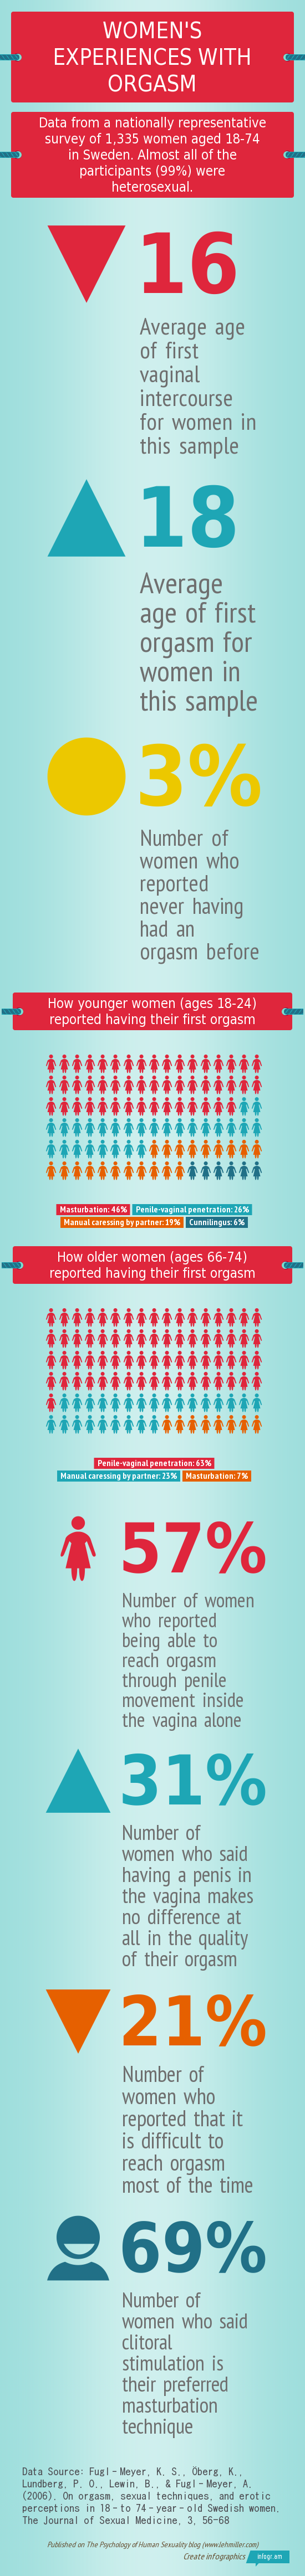 Infographic describing women's experiences with orgasm